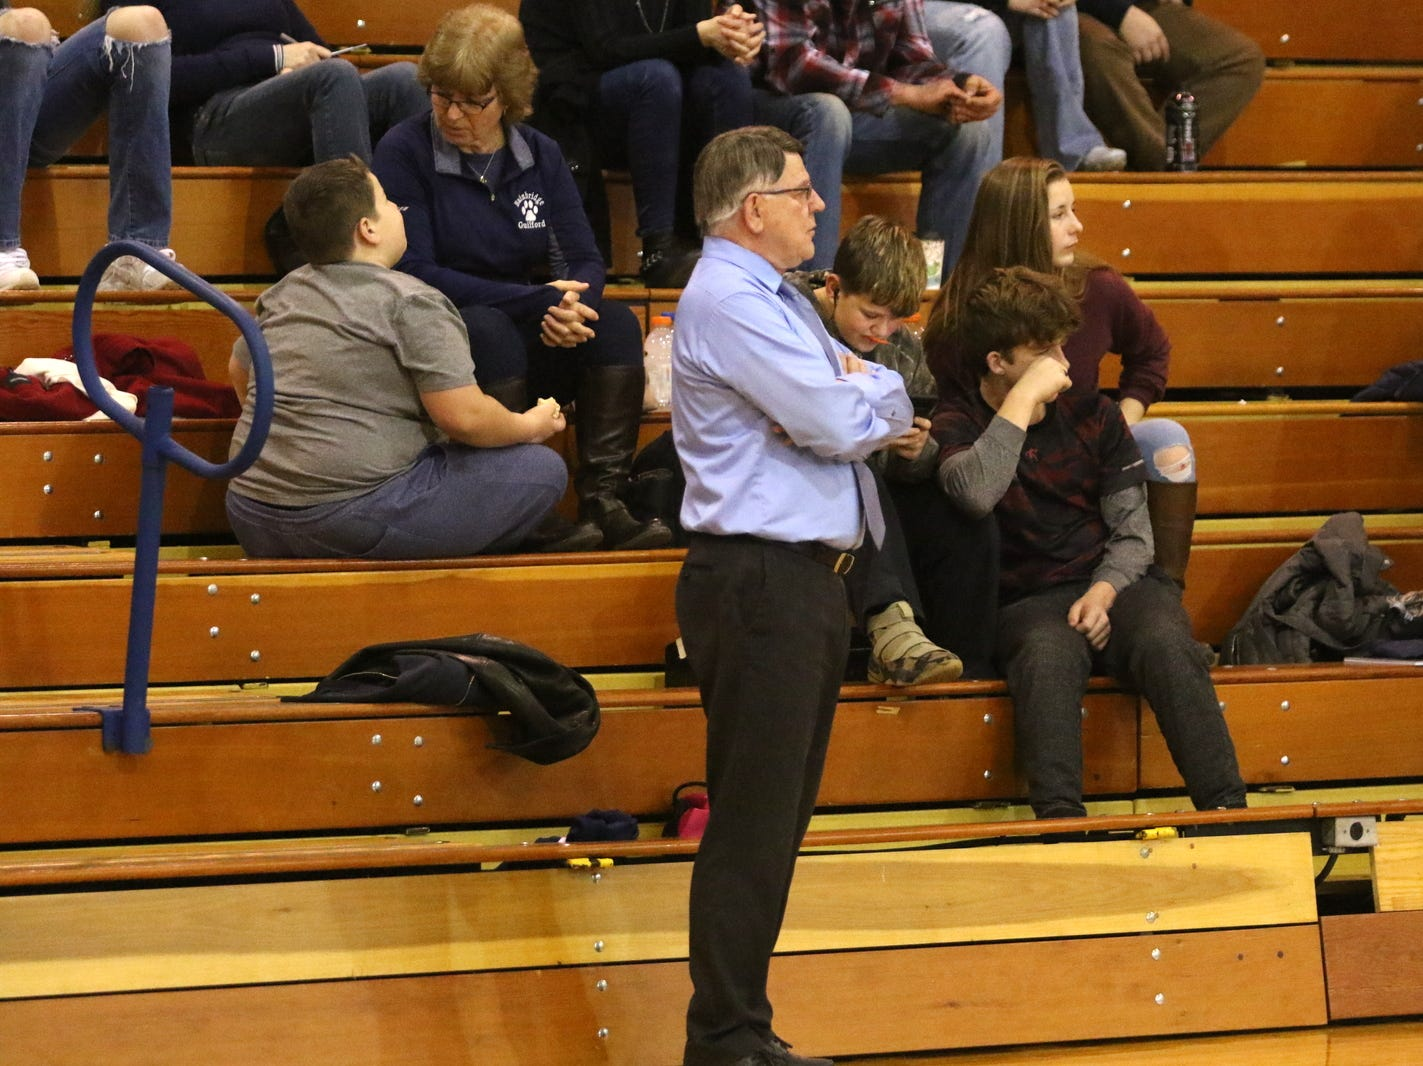 Bob Conway coaches the Bainbridge-Guilford girls basketball team against Elmira Notre Dame on Jan. 12, 2019 in Southport.